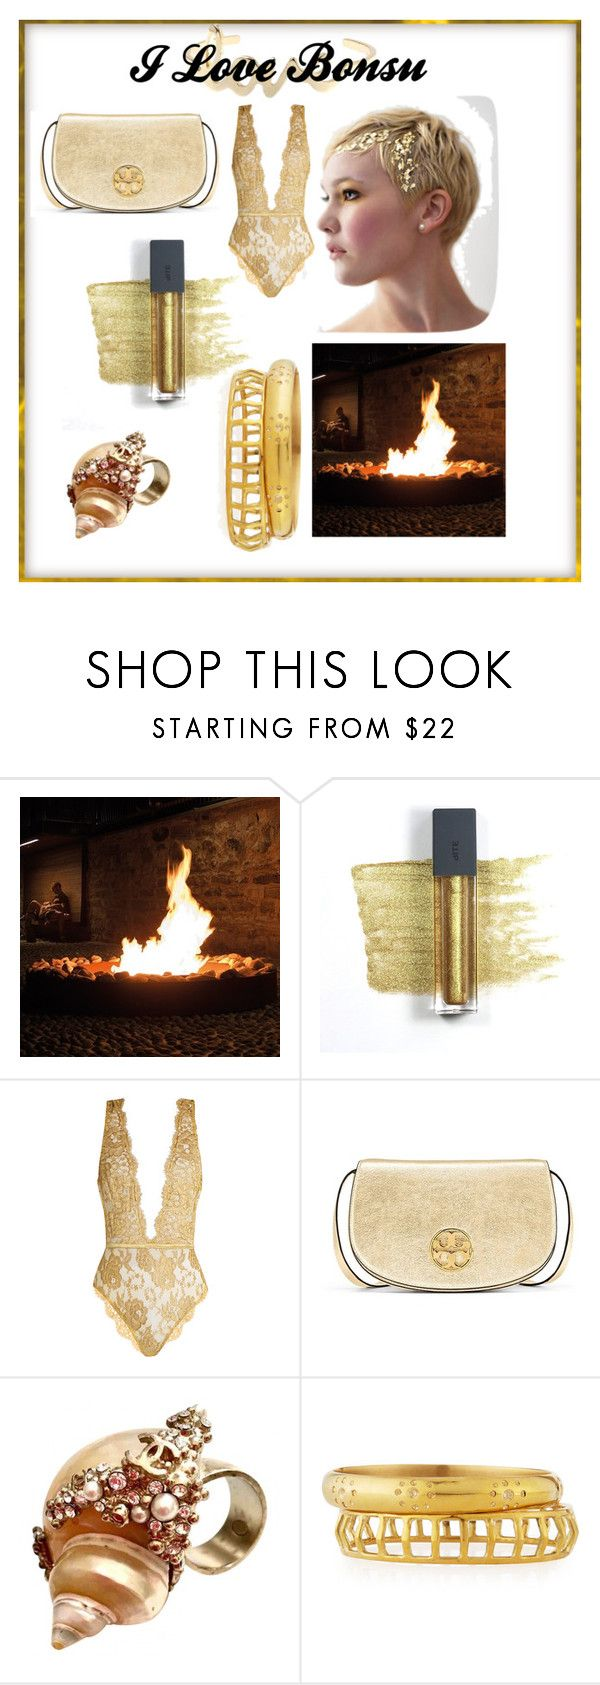 New Age Bonsu By Marguerite Dillworth Liked On Polyvore Featuring Interior